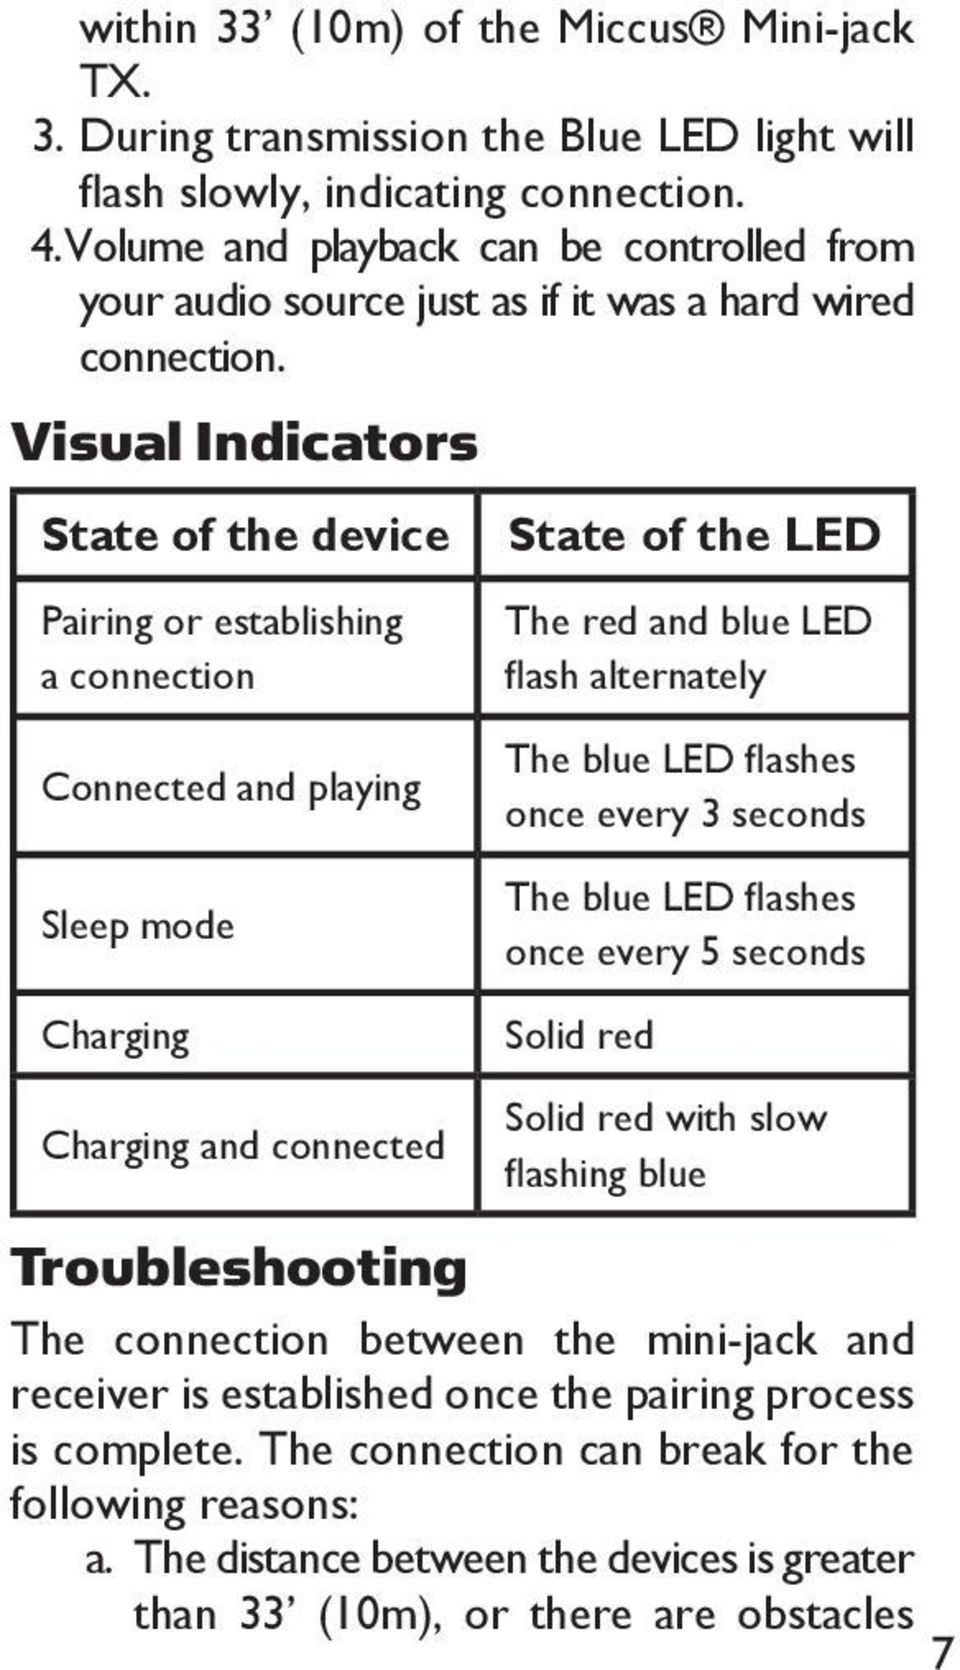 Visual Indicators State of the device Pairing or establishing a connection Connected and playing Sleep mode Charging Charging and connected State of the LED The red and blue LED flash alternately The